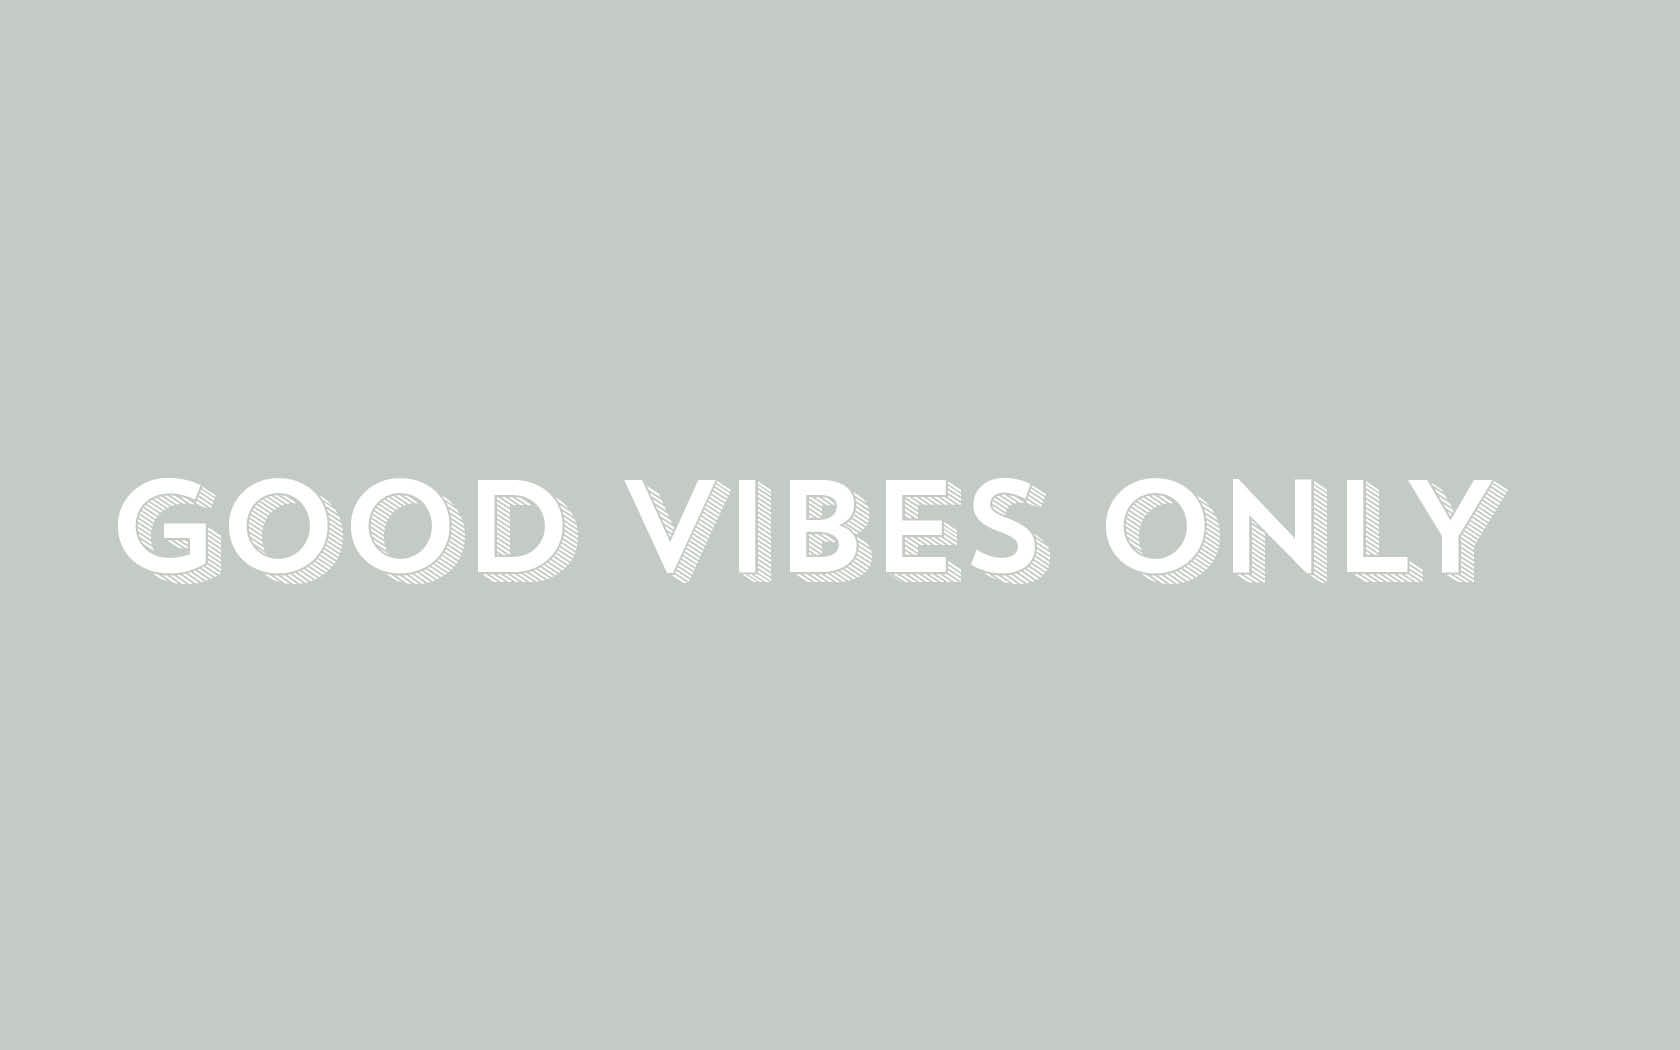 Minimal Grey White Good Vibes Only Desktop Wallpaper Background Good Vibes Only Life Quotes Wallpaper Good Vibes Wallpaper